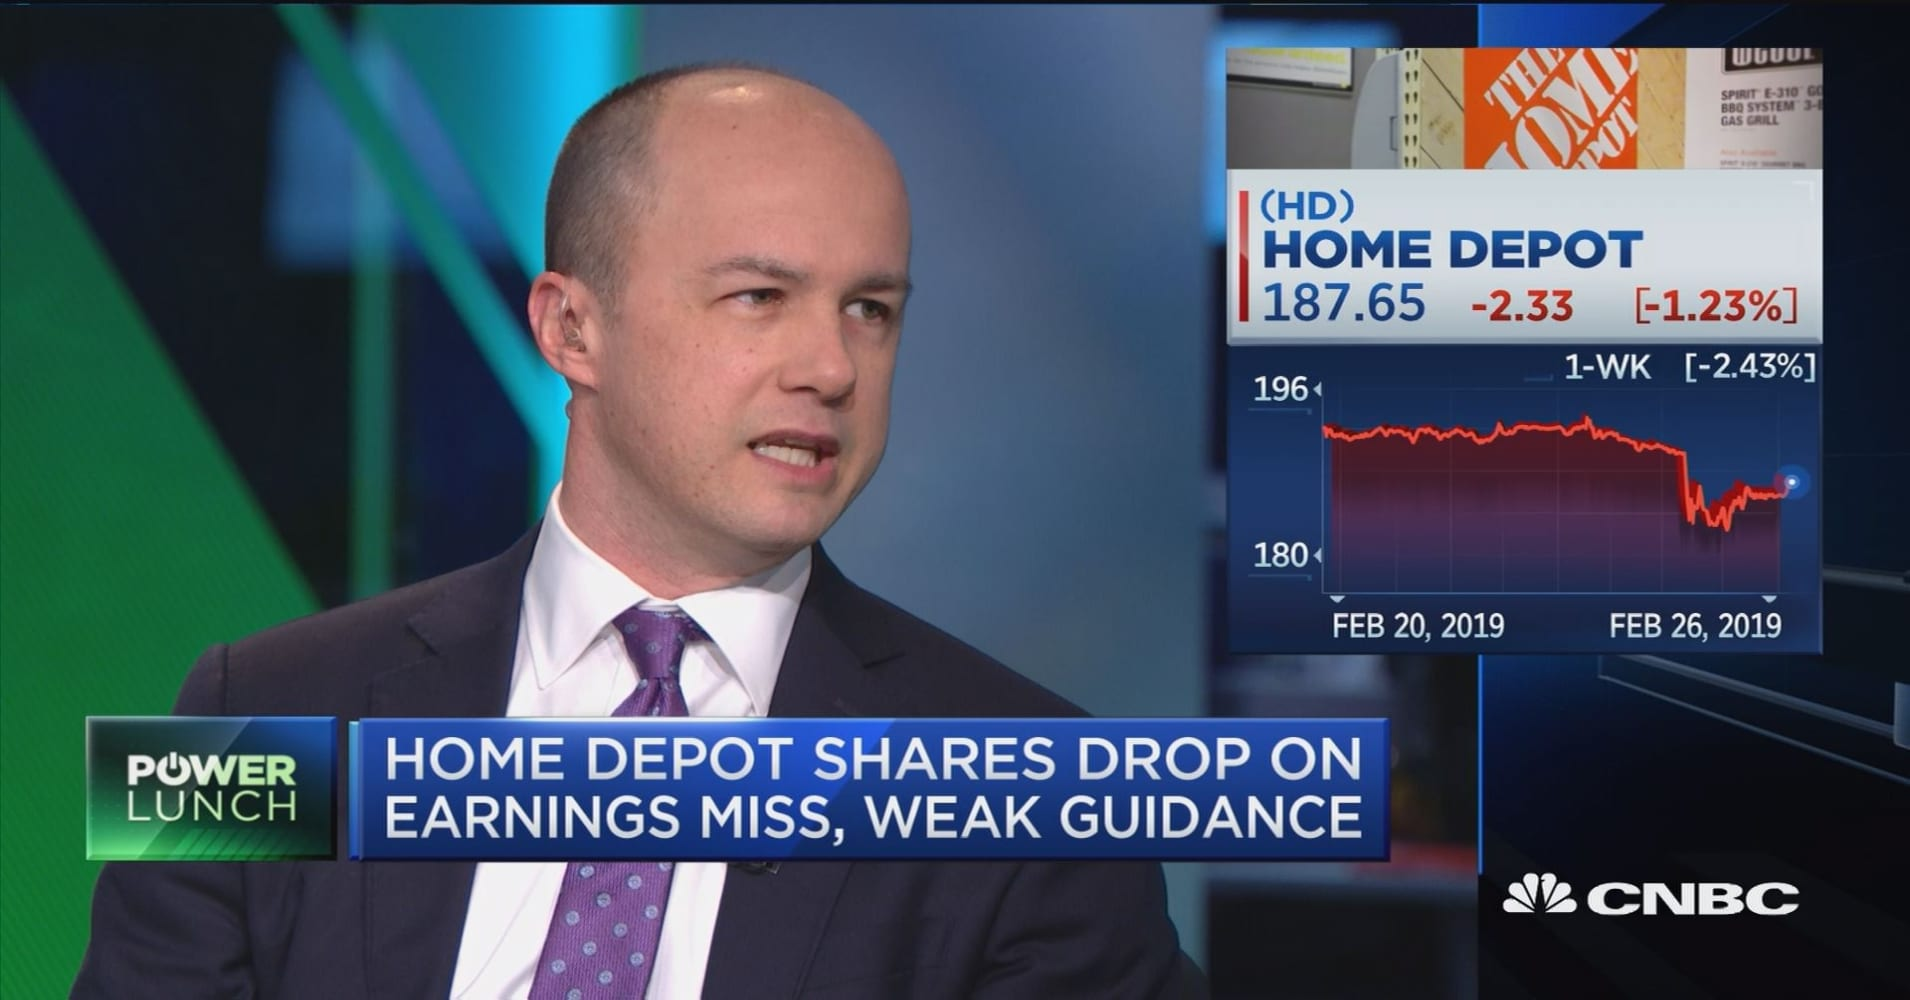 Home Depot earnings miss shows housing market slowing, says research analyst